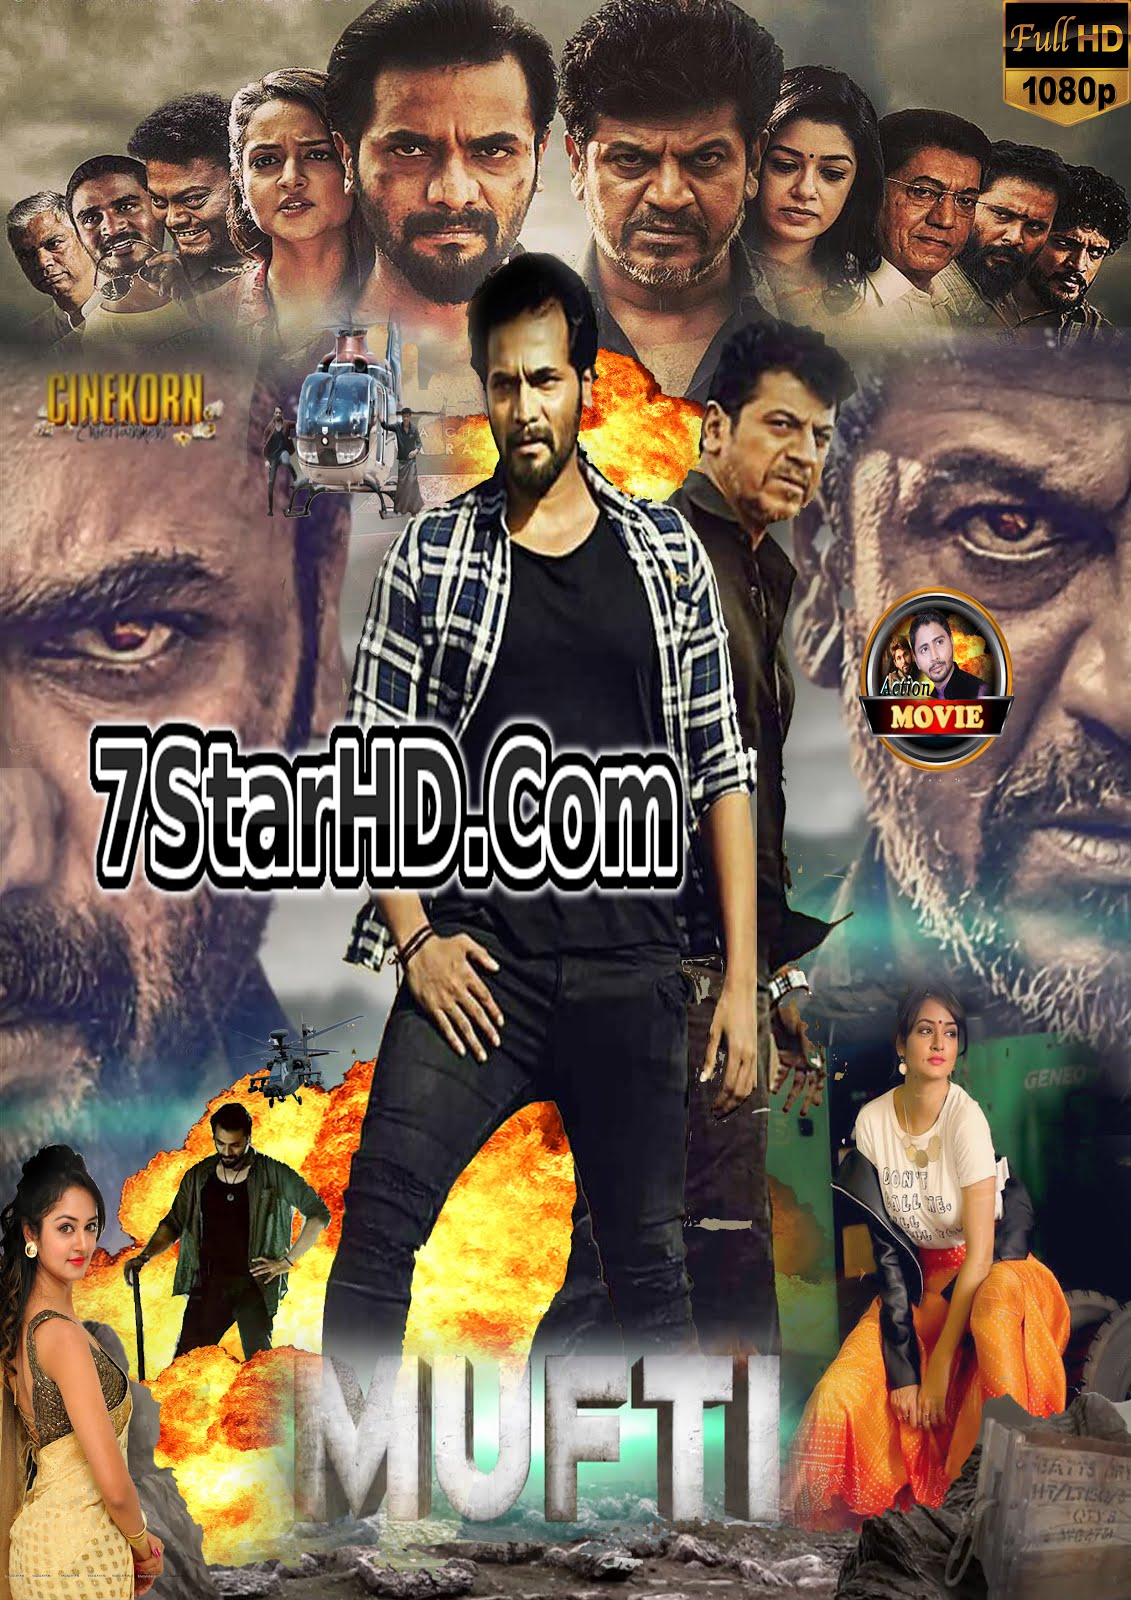 Mufti 2018 Hindi Dubbed 720p HDRip Will be Available on 7StarHD